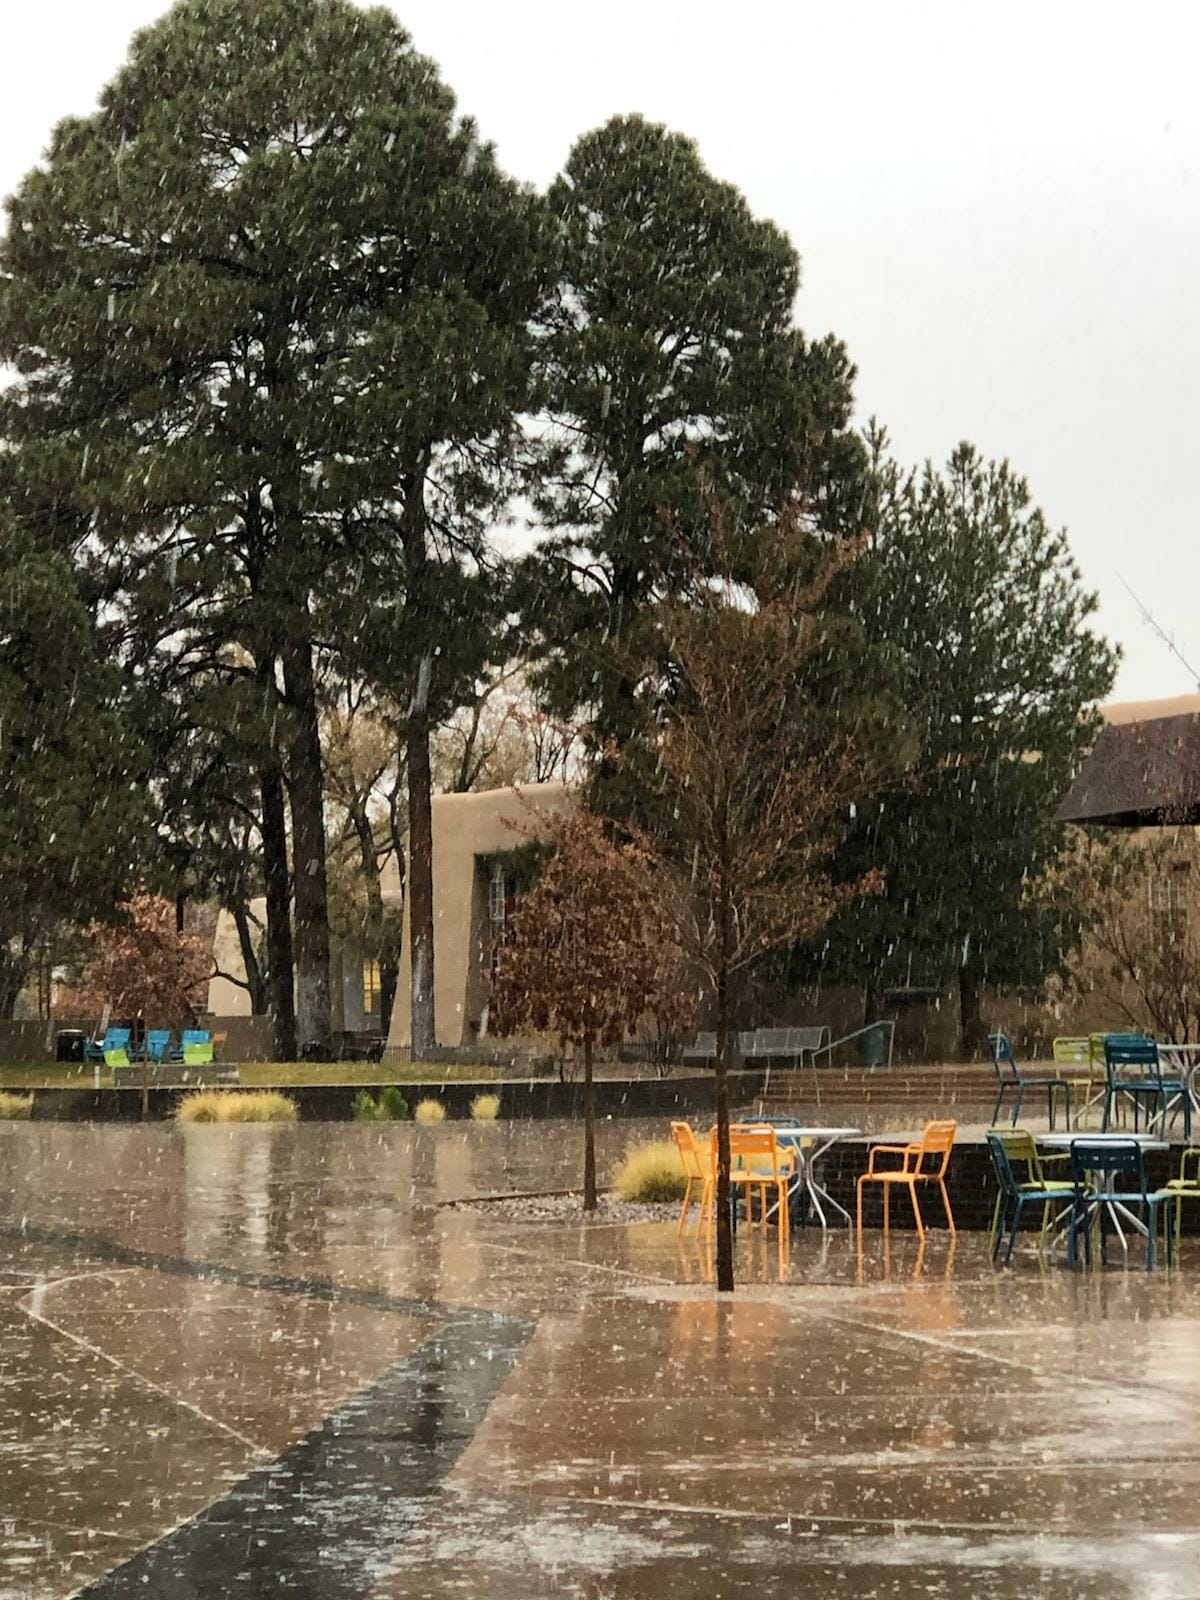 Snowing on UNM Campus November 21, 2019